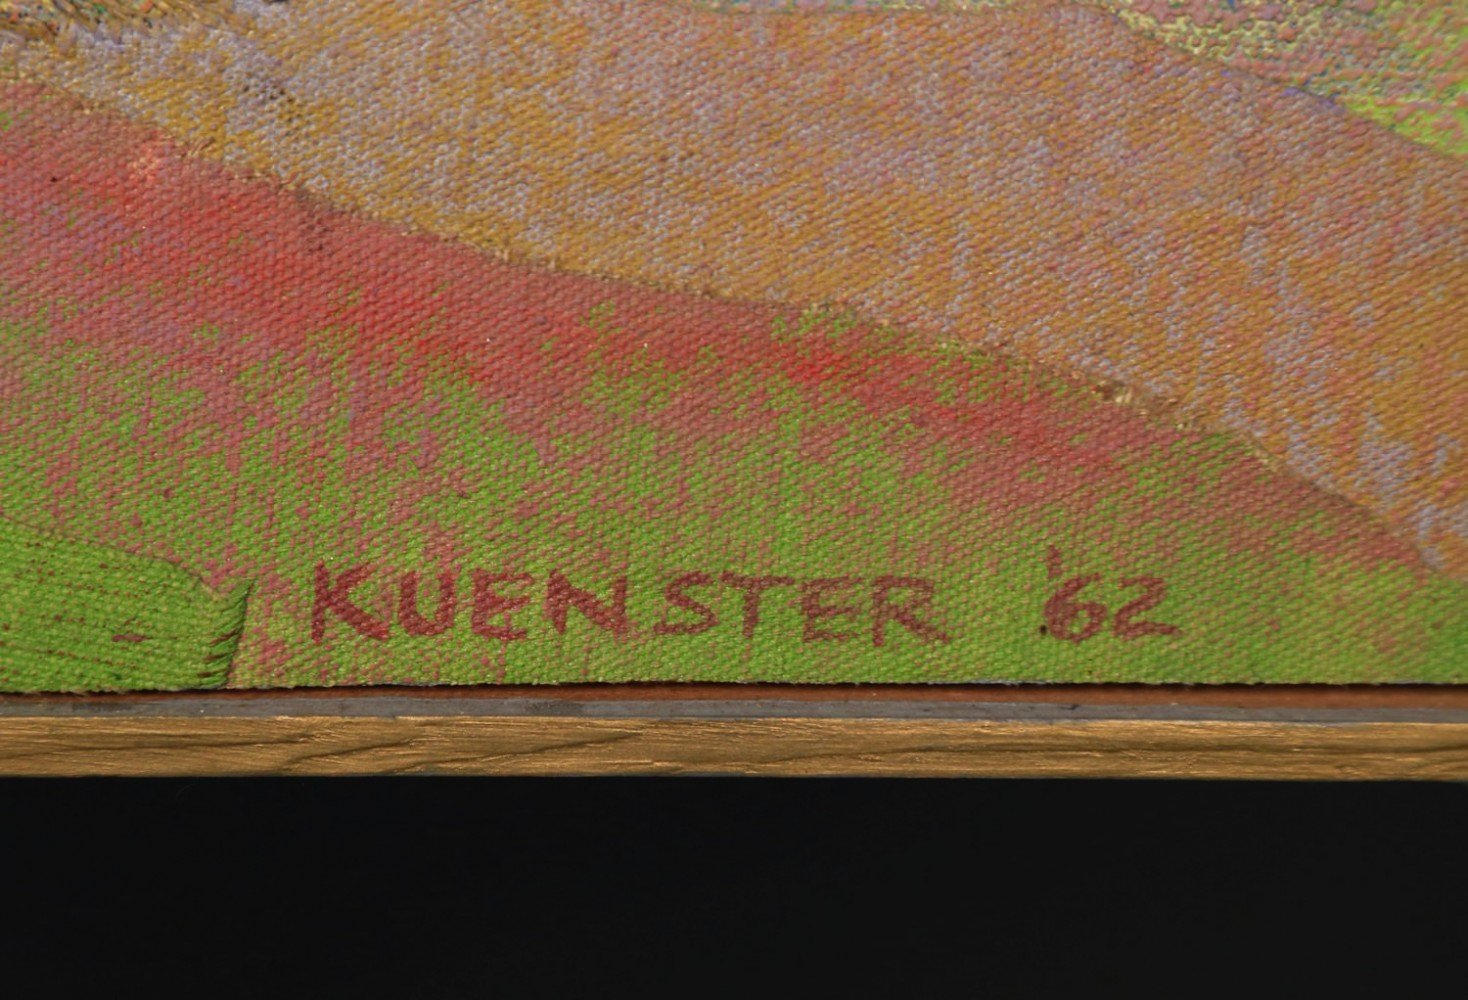 Kuenster - Three Nudes in a Landscape